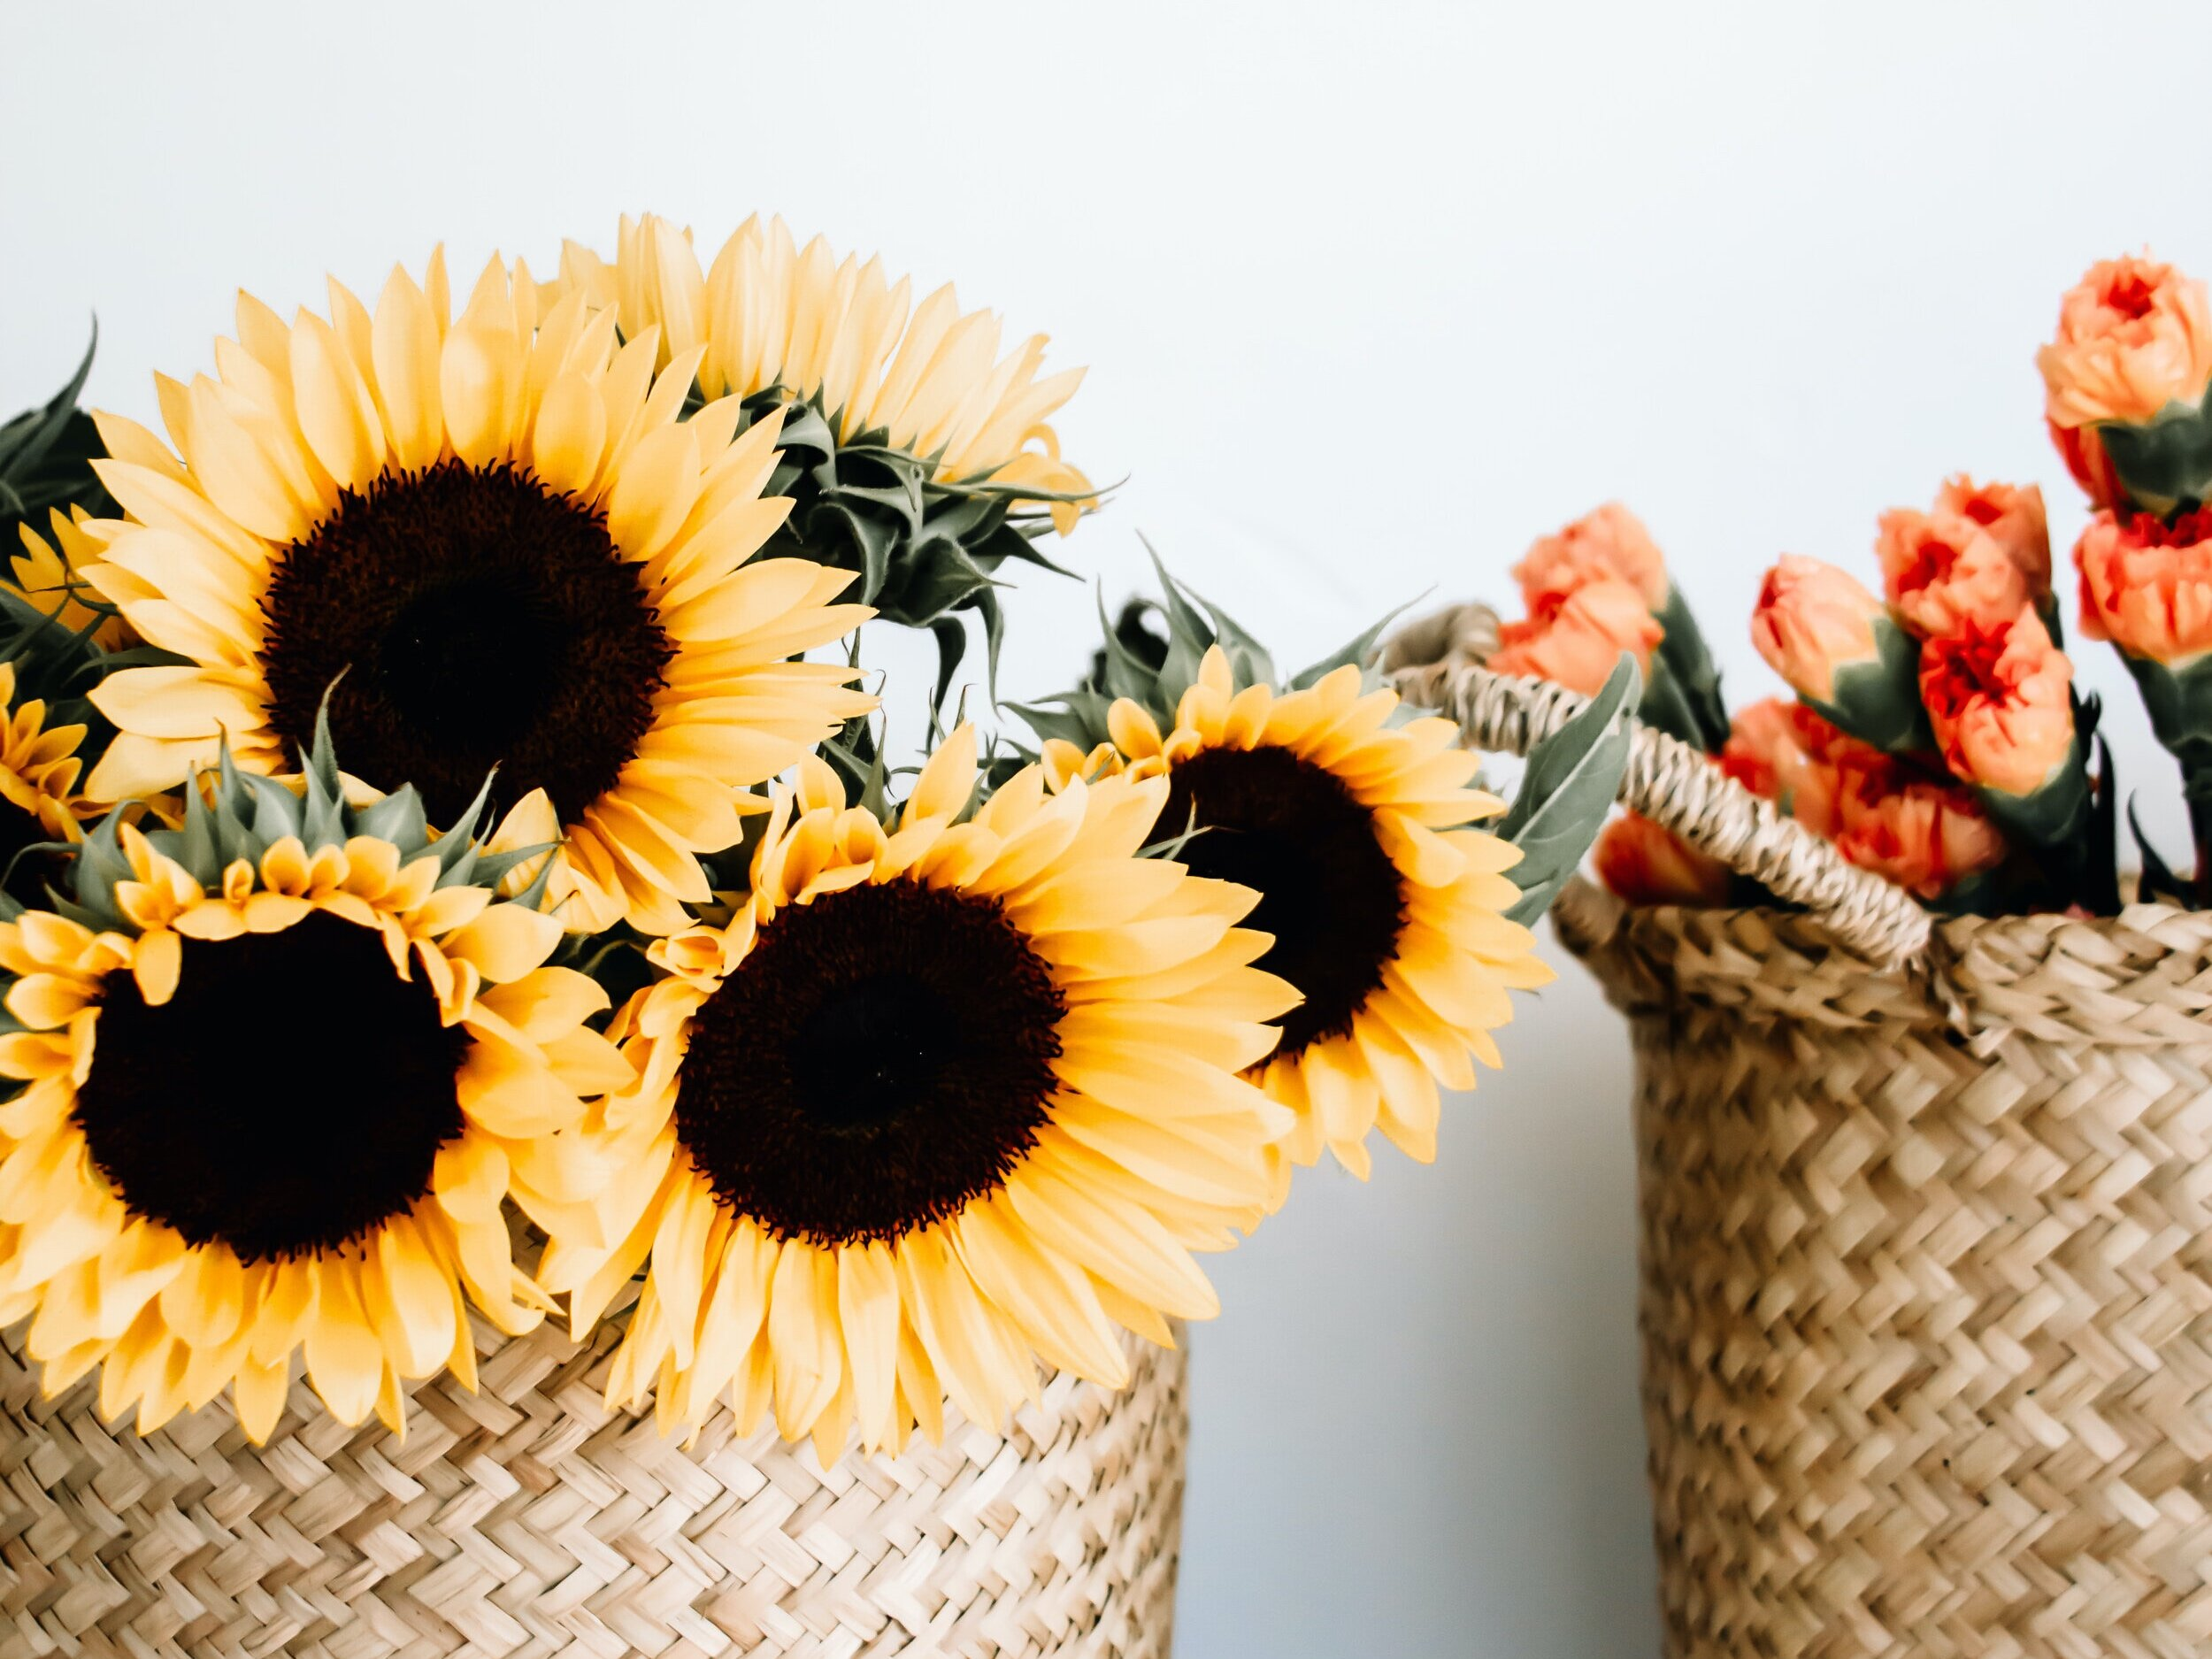 End of the summer sunflower pick